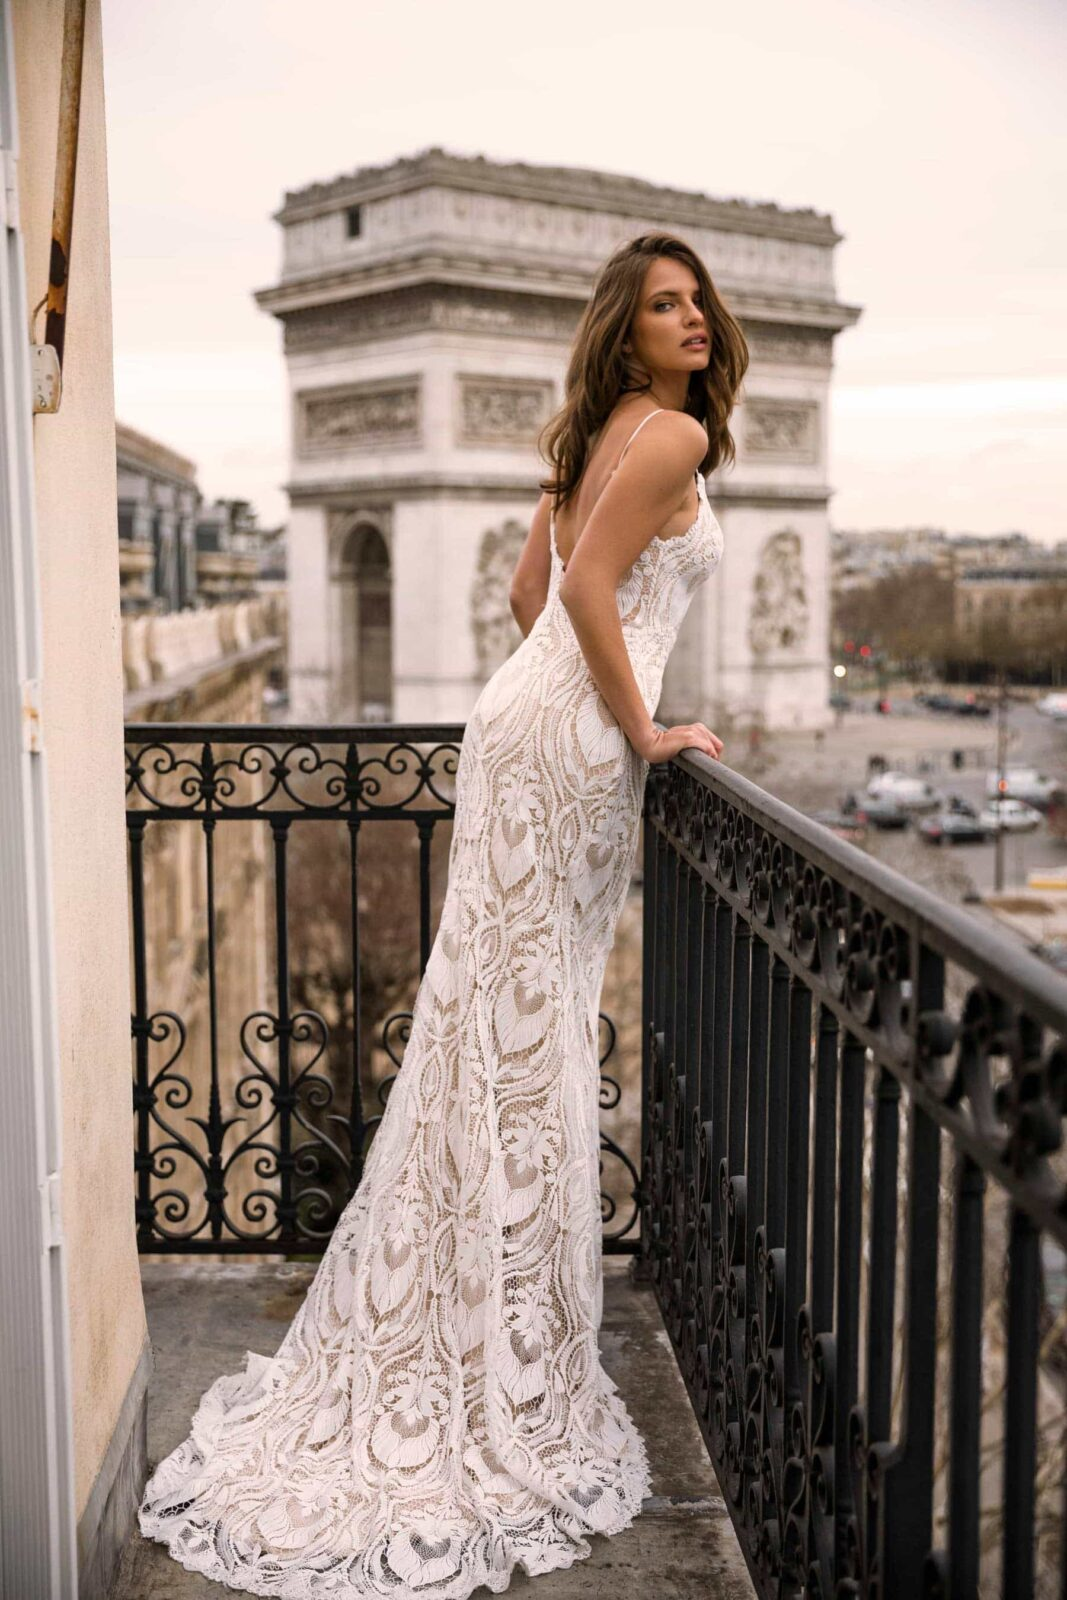 INDIA ML4119 FULL LACE FITTED GOWN WITH SPAGHETTI STRAPS AND DETACHABLE OFF SHOULDER FLUTTER SLEEVES WEDDING DRESS MADI LANE BRIDAL6